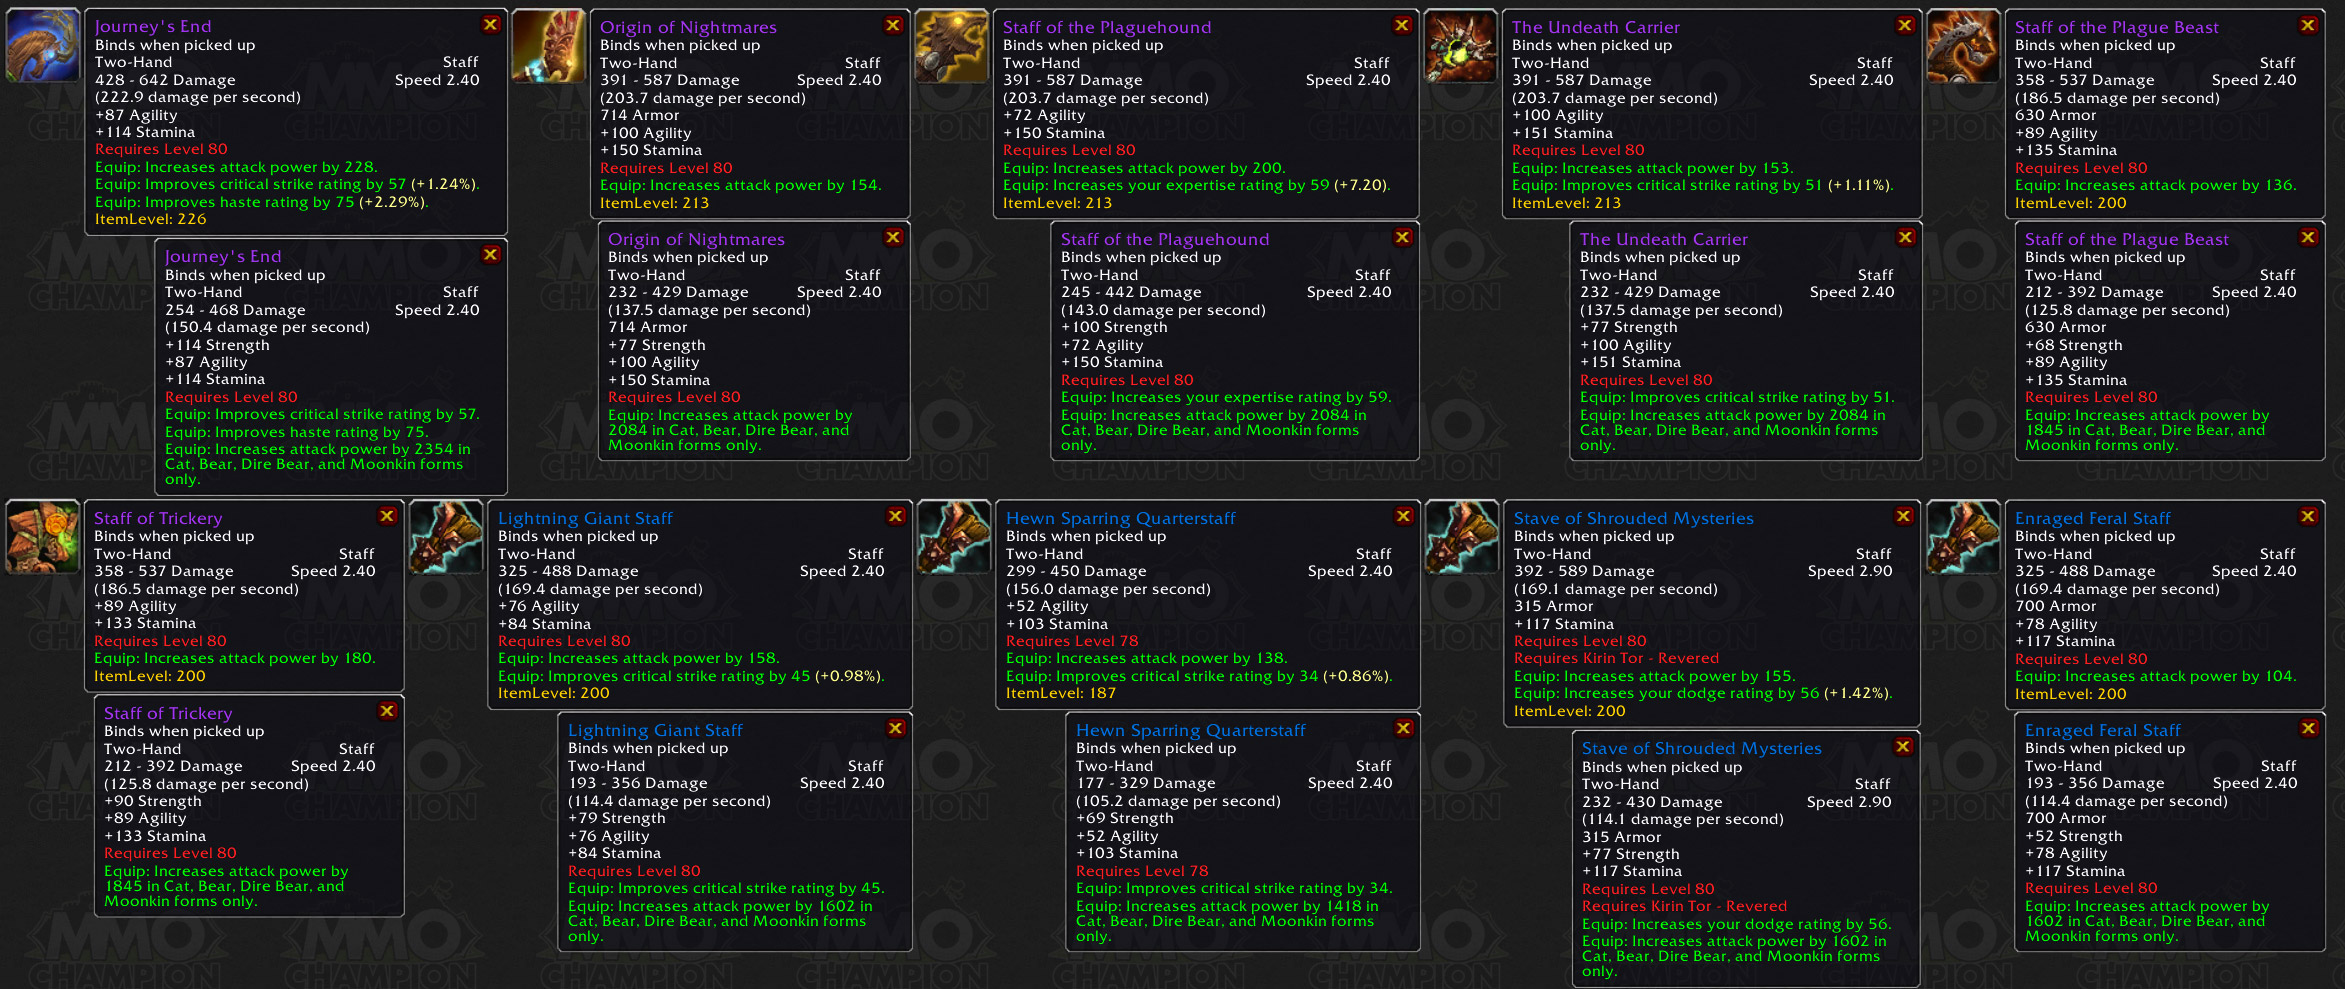 Feral Attack Power on weapons